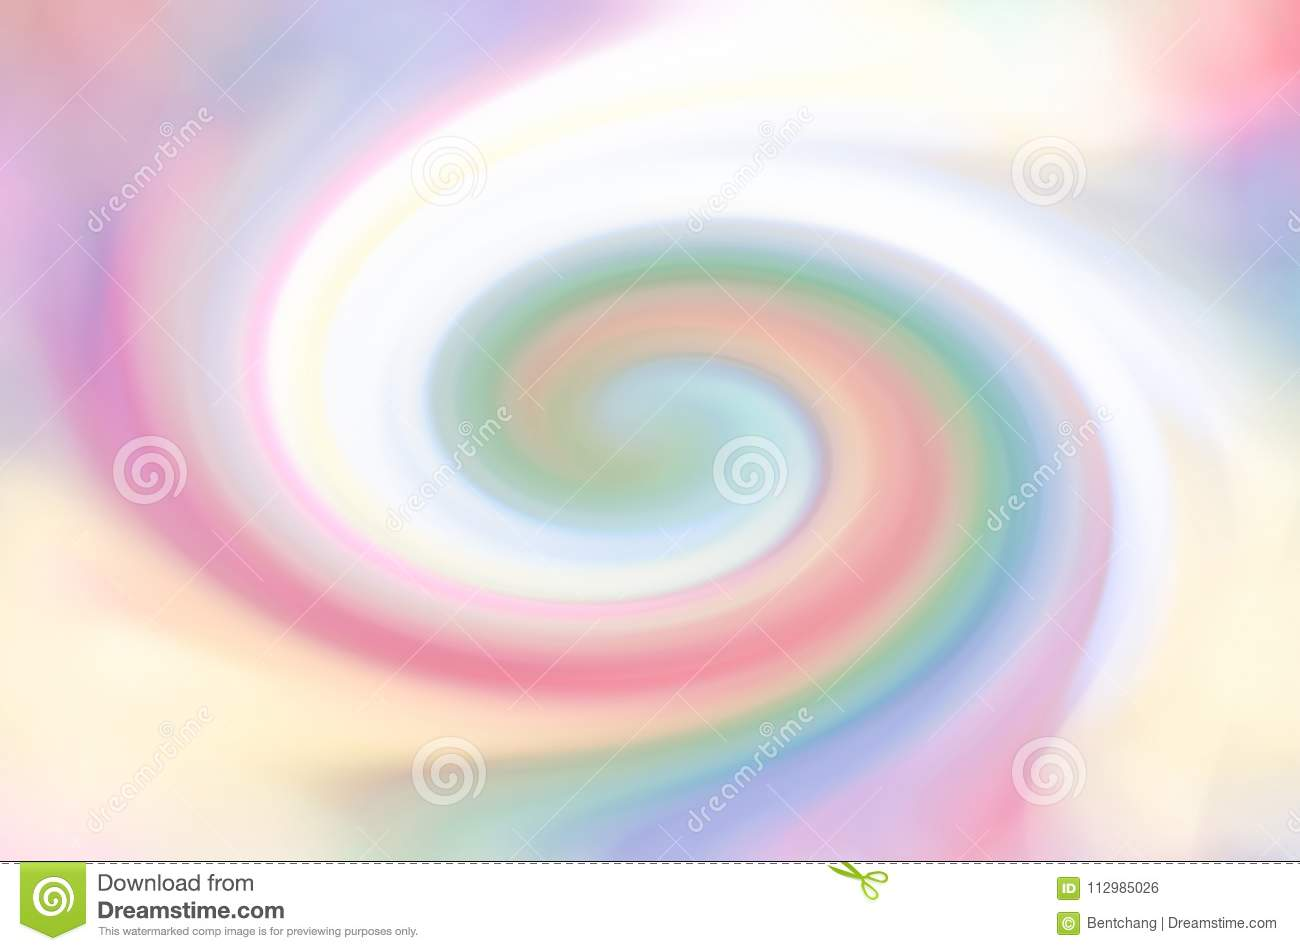 Abstract illustrations of motion, conceptual background. Blur, beauty, nature, brown & macro.